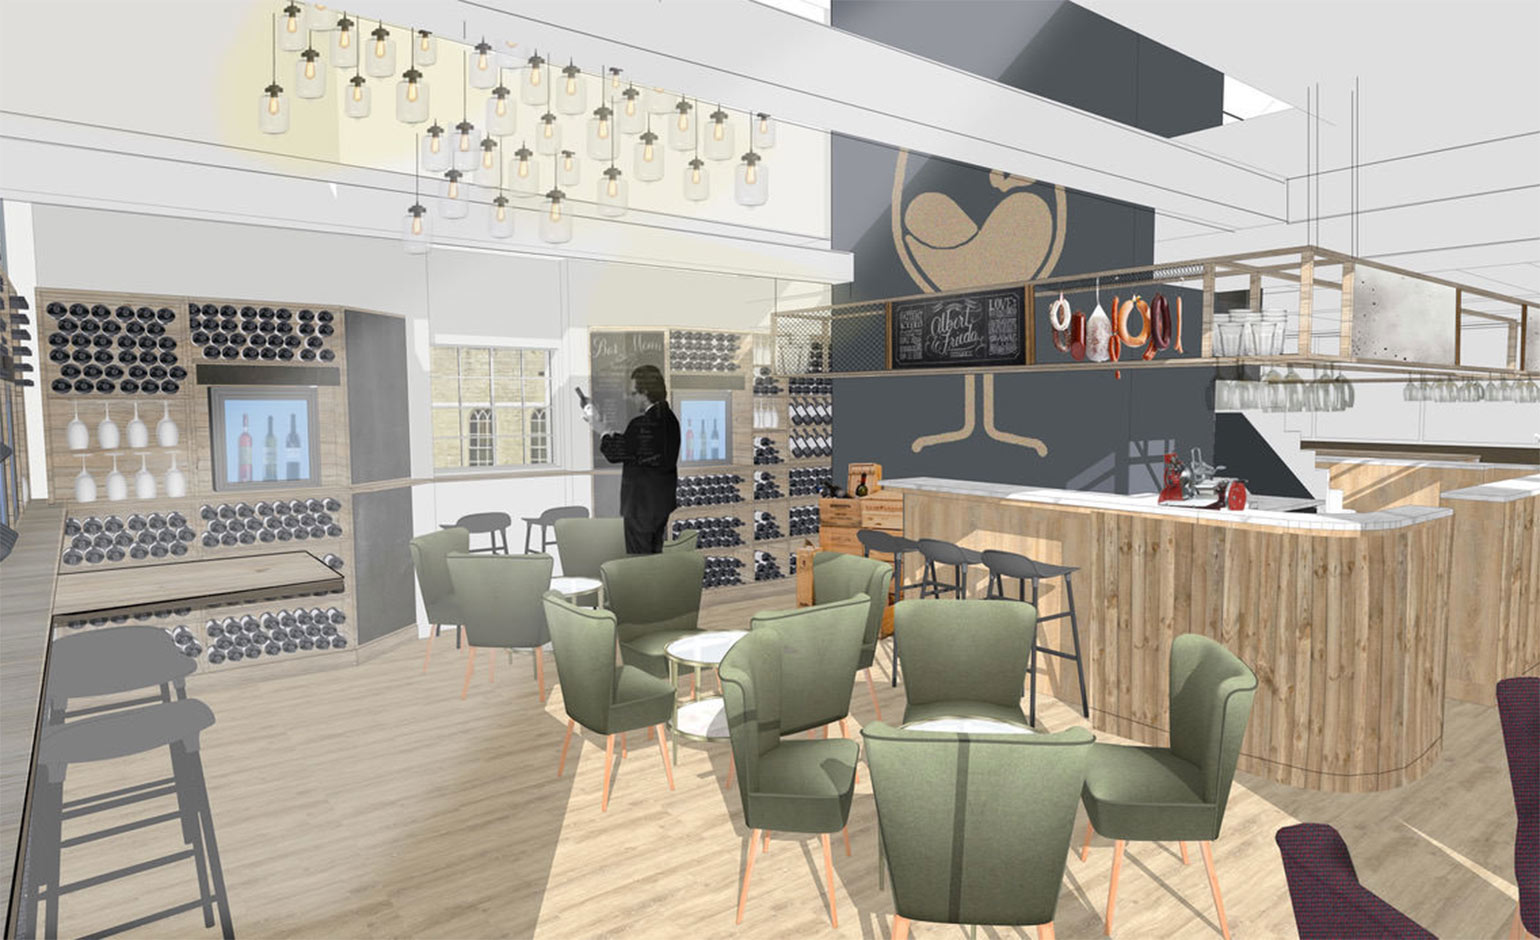 Award-winning wine business 'Le Vignoble' set to open in Milsom Place